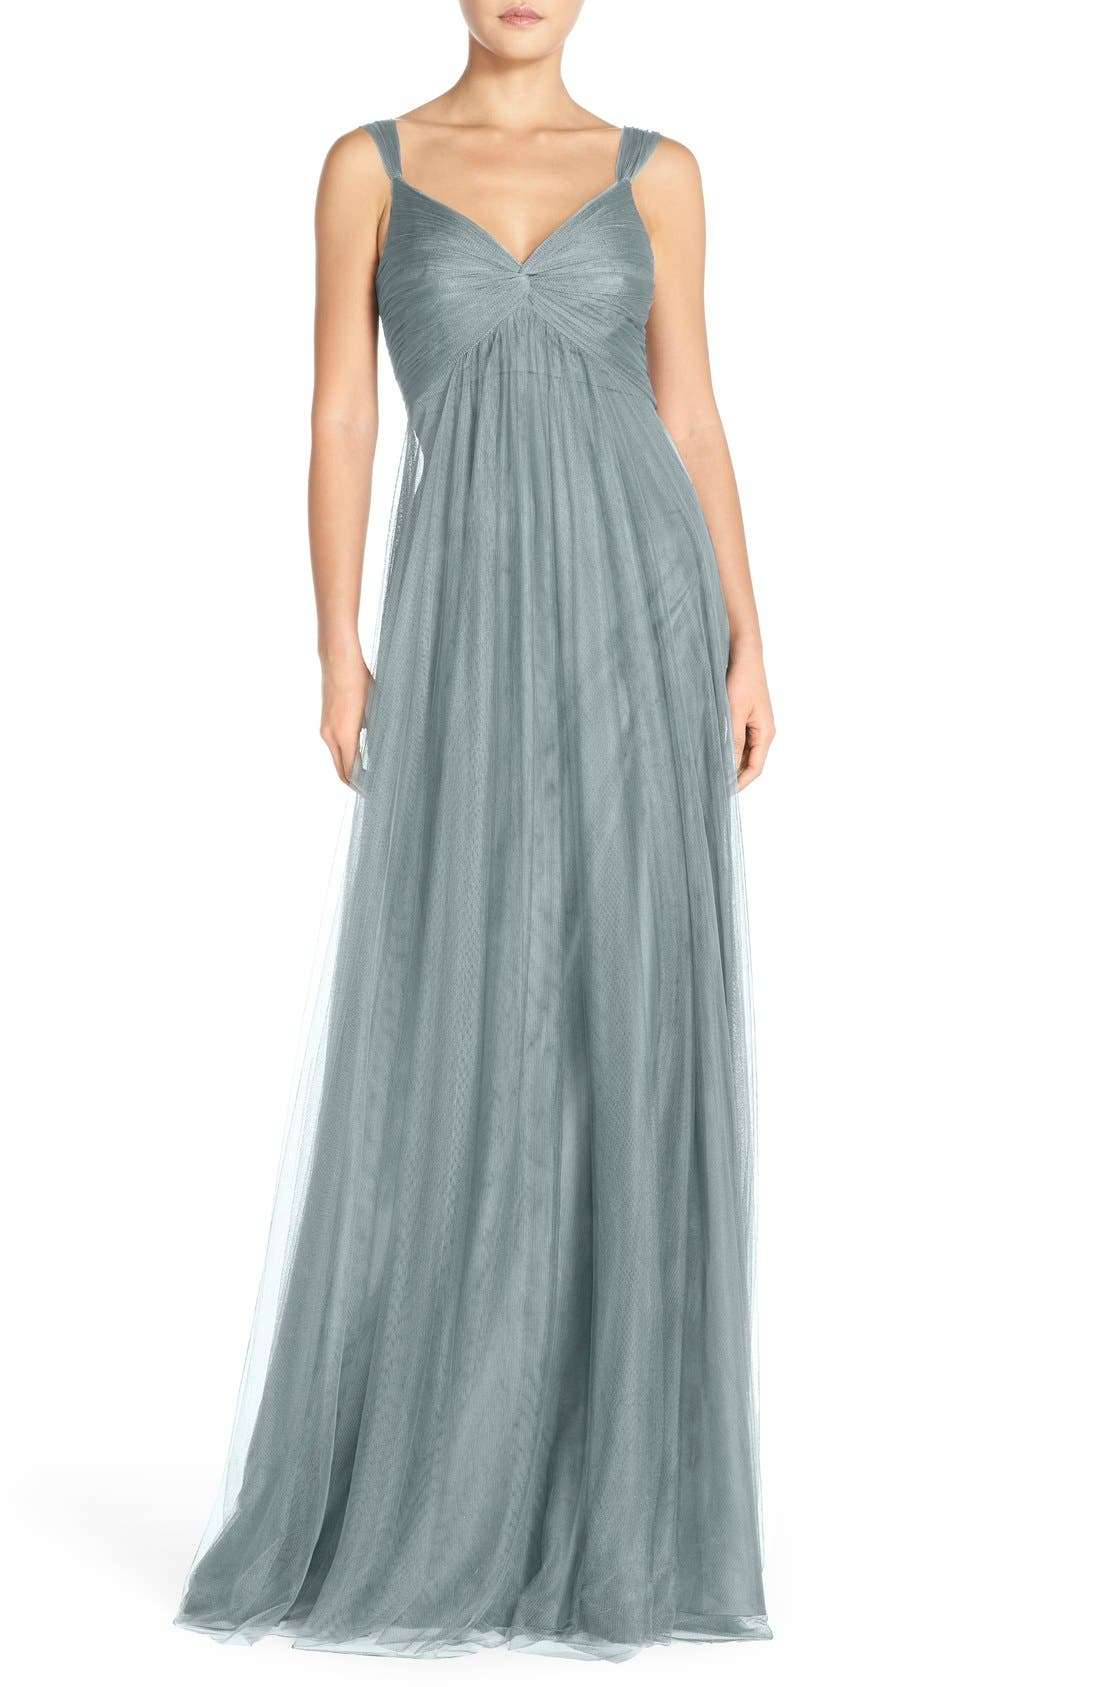 Monique Lhuillier Empire Waist Tulle Twist Front Gown